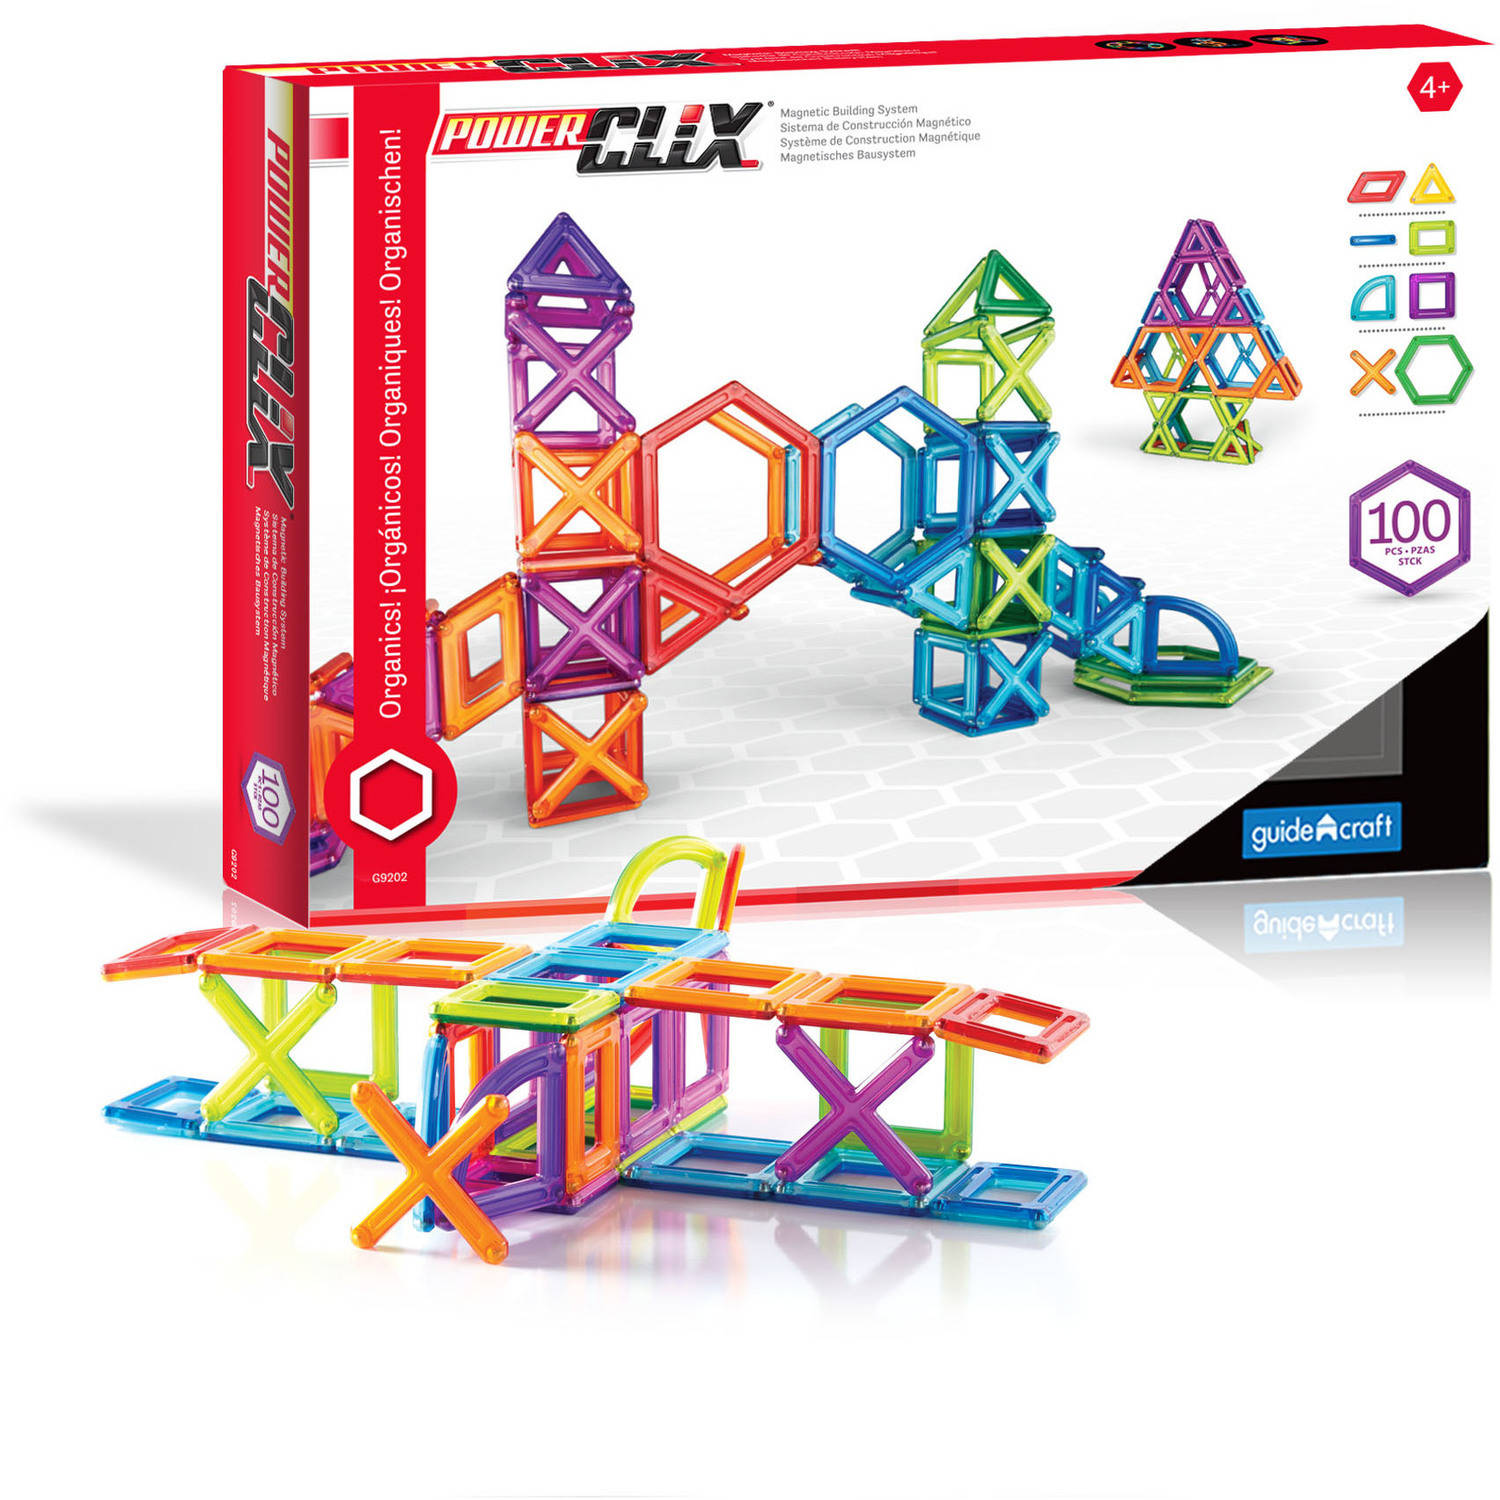 Guidecraft PowerClix 100-Piece Classroom Set